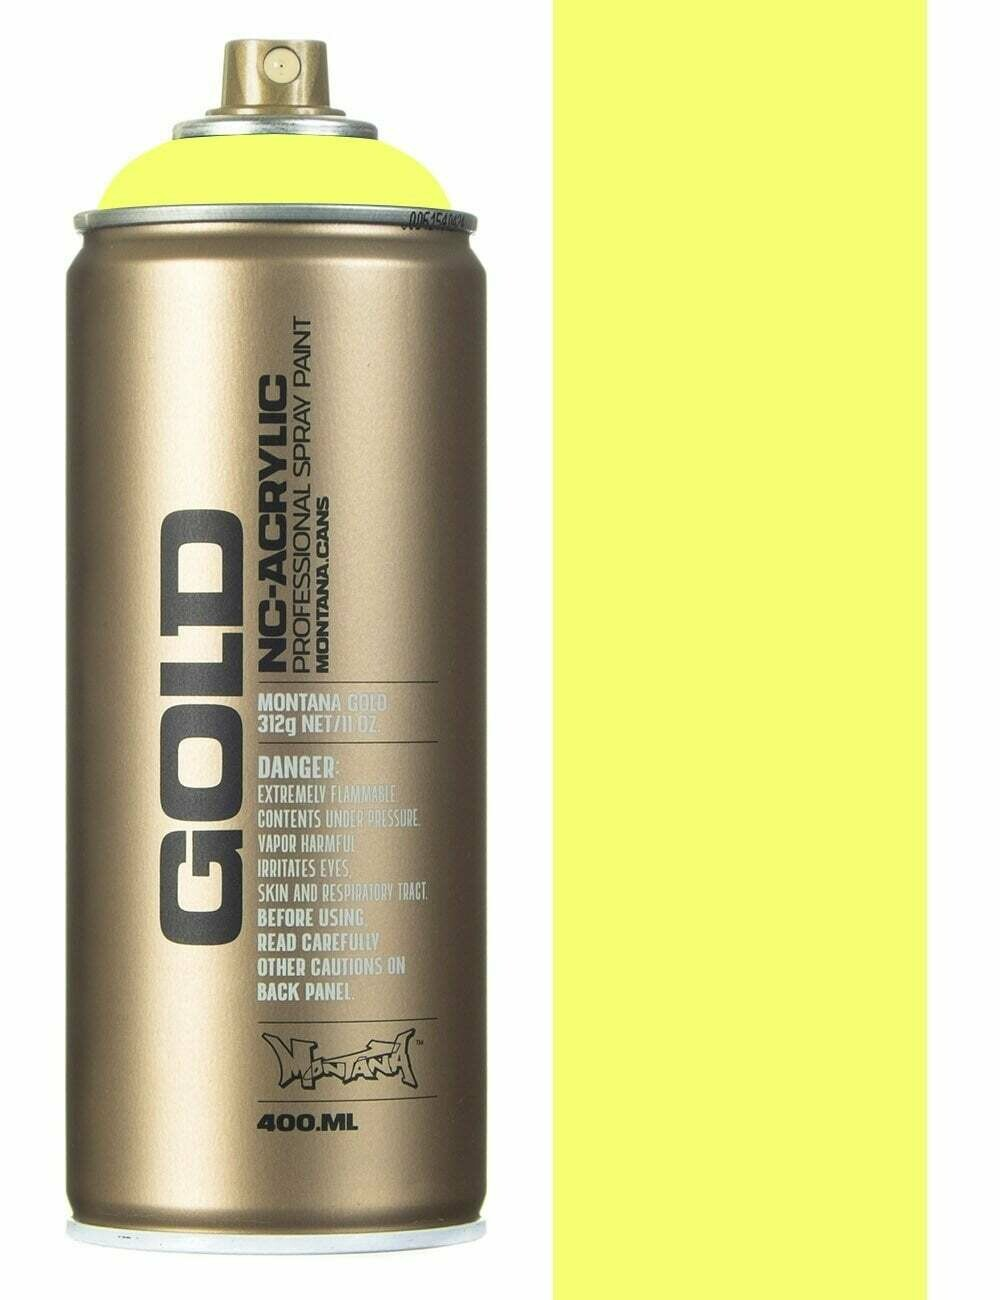 Montana; Gold Acrylic Spray Color, Flash Yellow